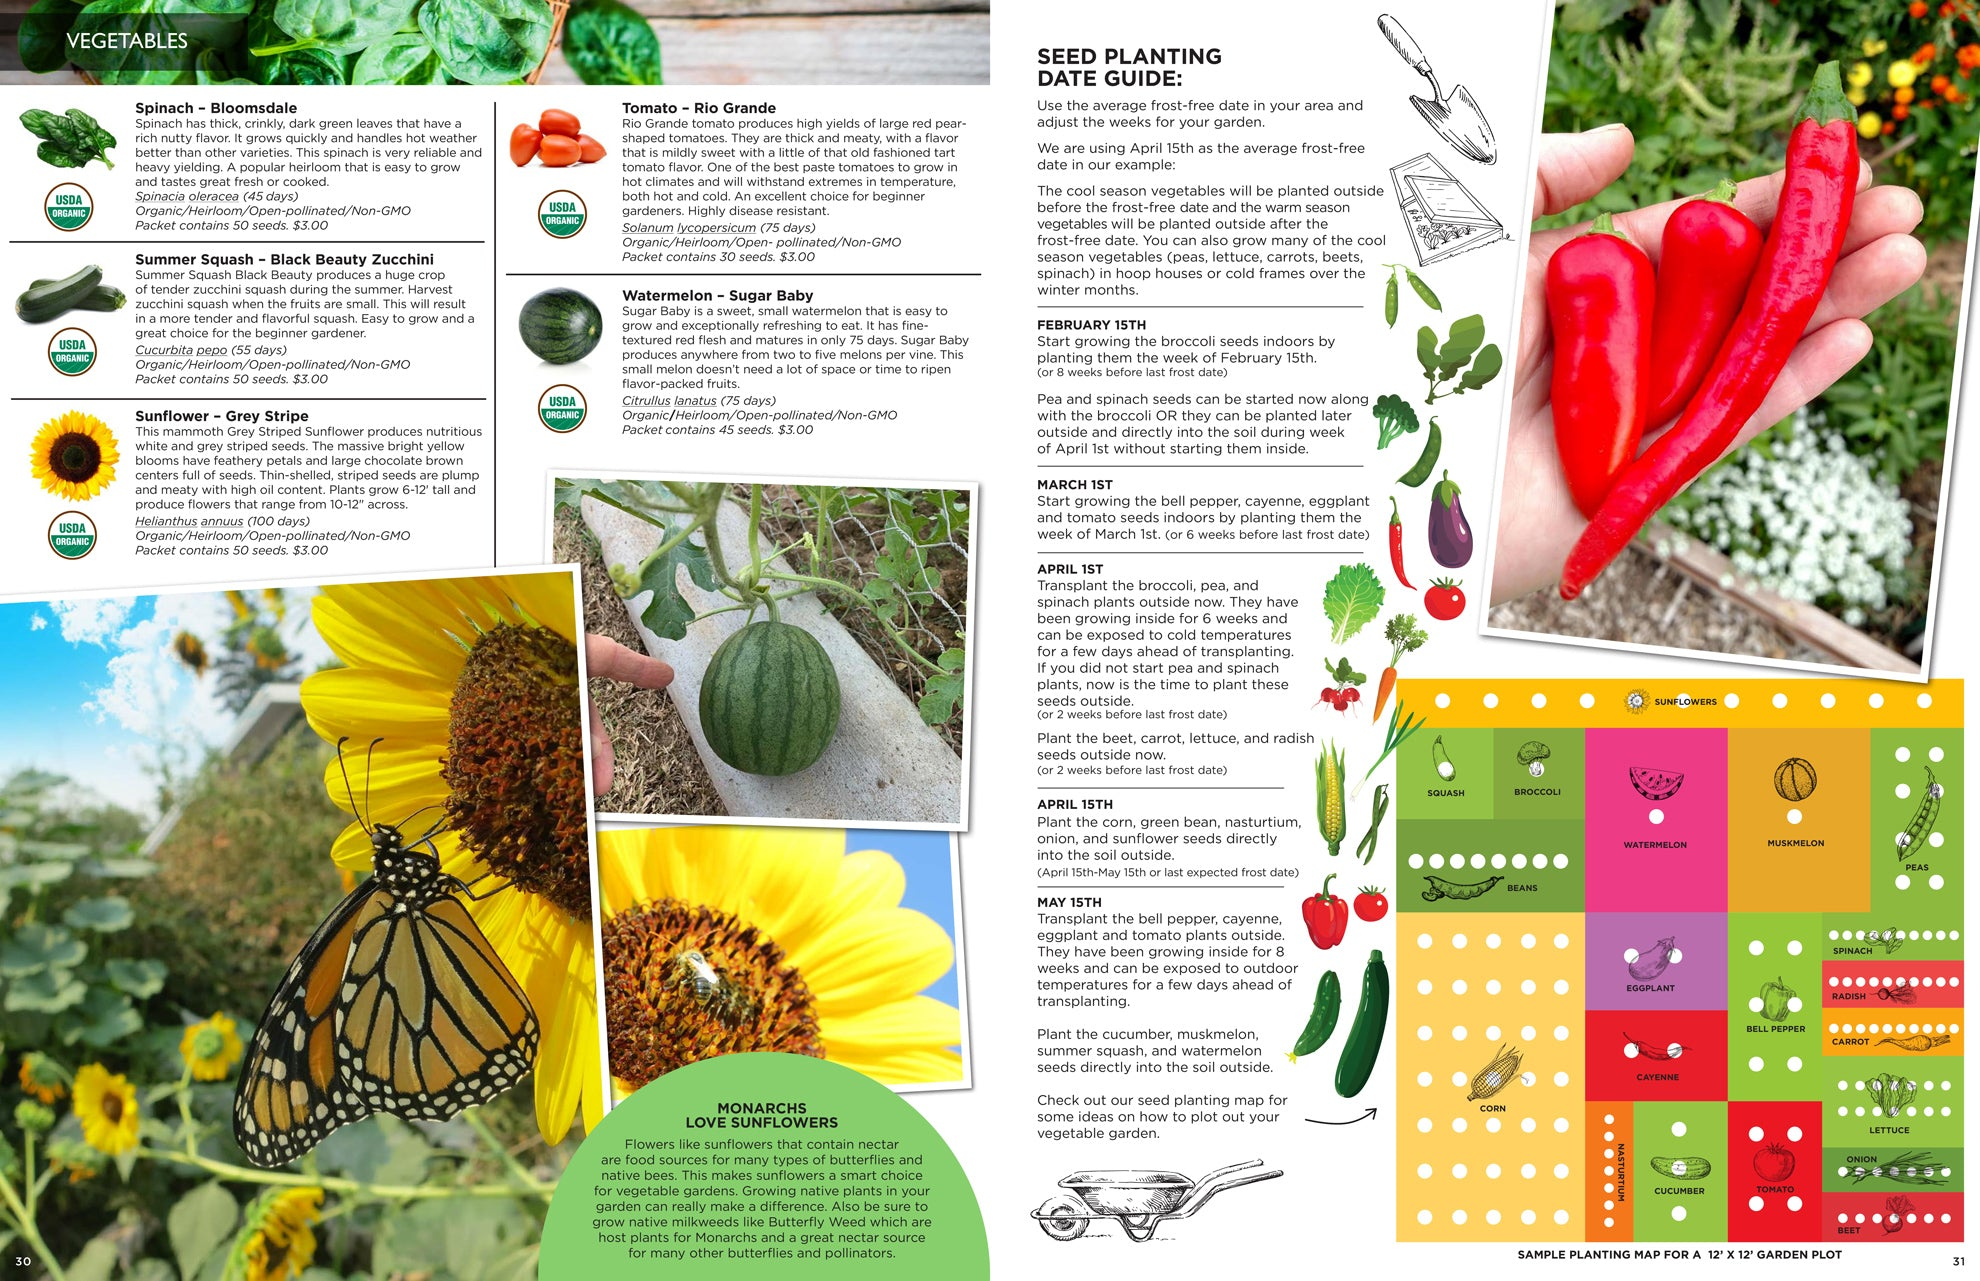 2021 Seed Catalog from Sandia Seed - Organic Vegetable Seeds & Growing Guide